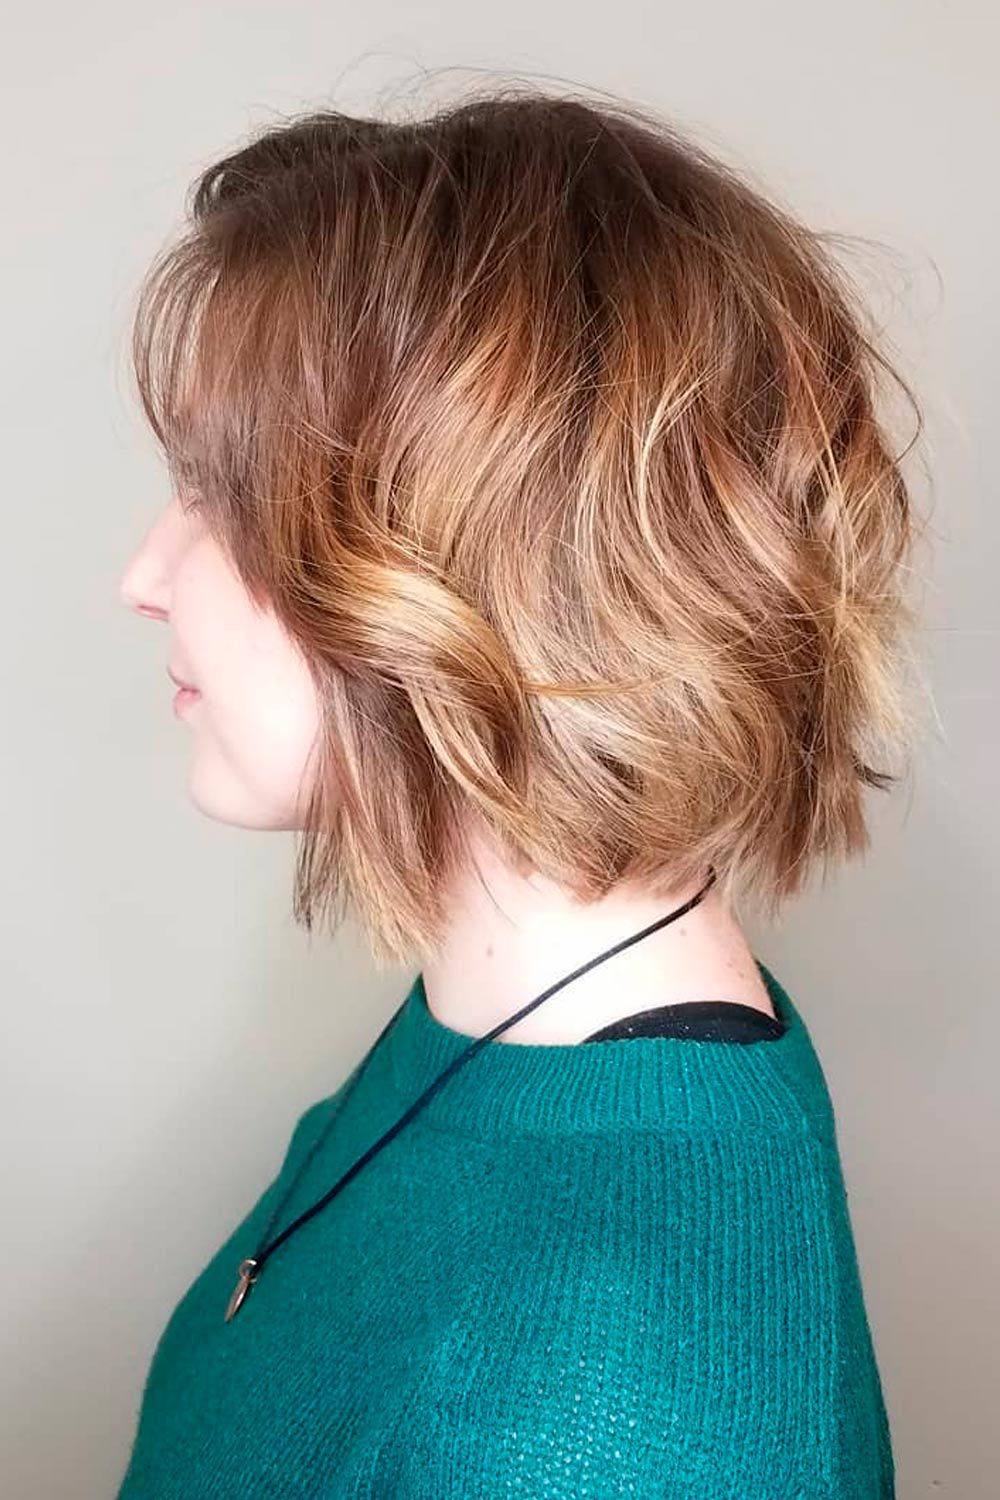 Curly Short Hairstyle For Round Faces, short hairstyles for women with round faces, short naturally curly hairstyles for round faces